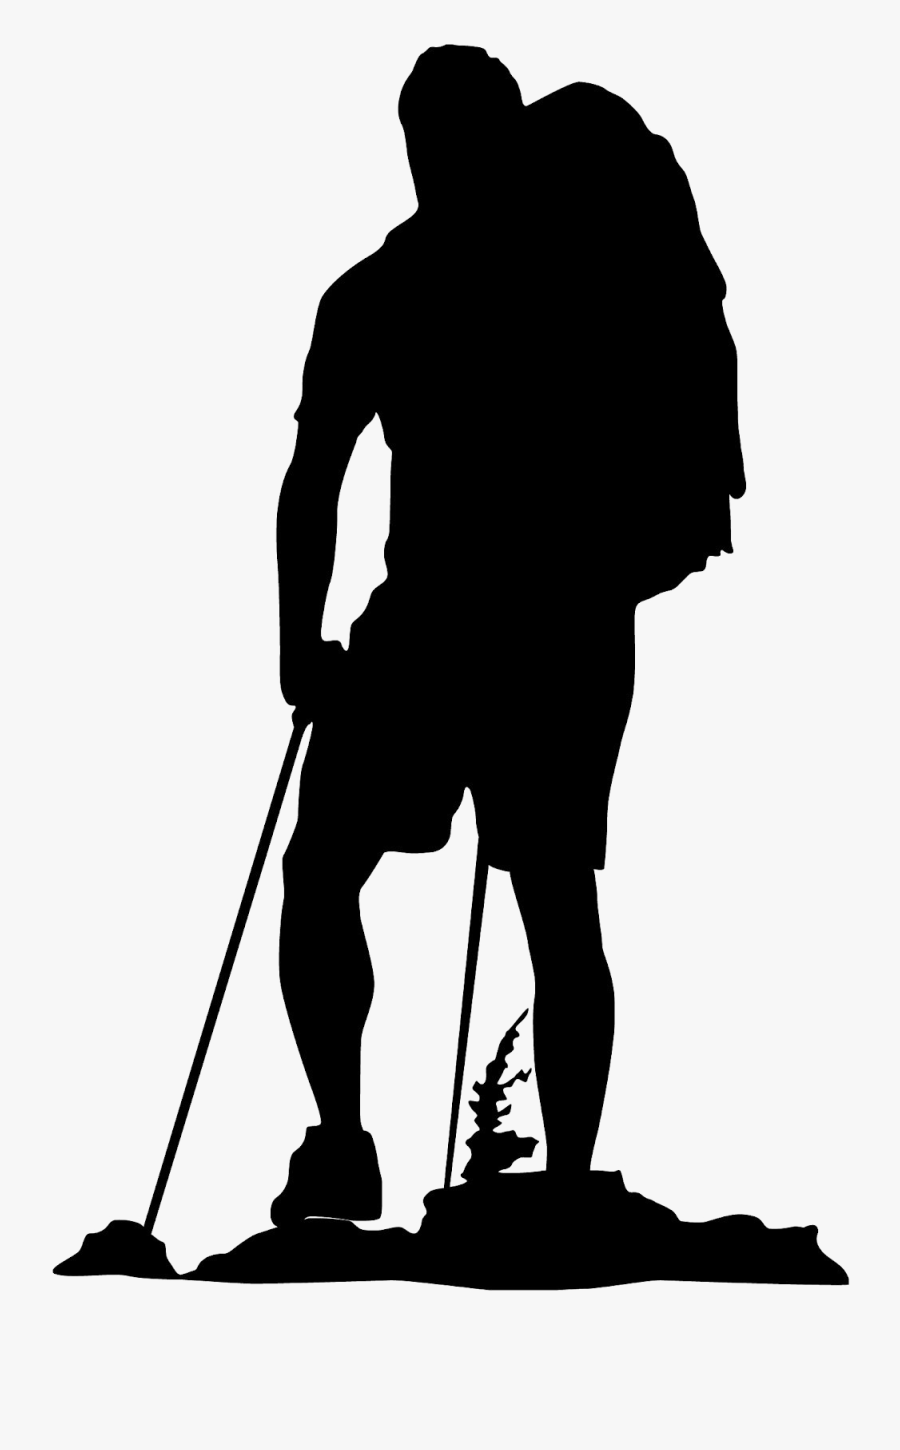 Clip Art Hiking Backpacking Vector Graphics Silhouette - Hiking Silhouette, Transparent Clipart